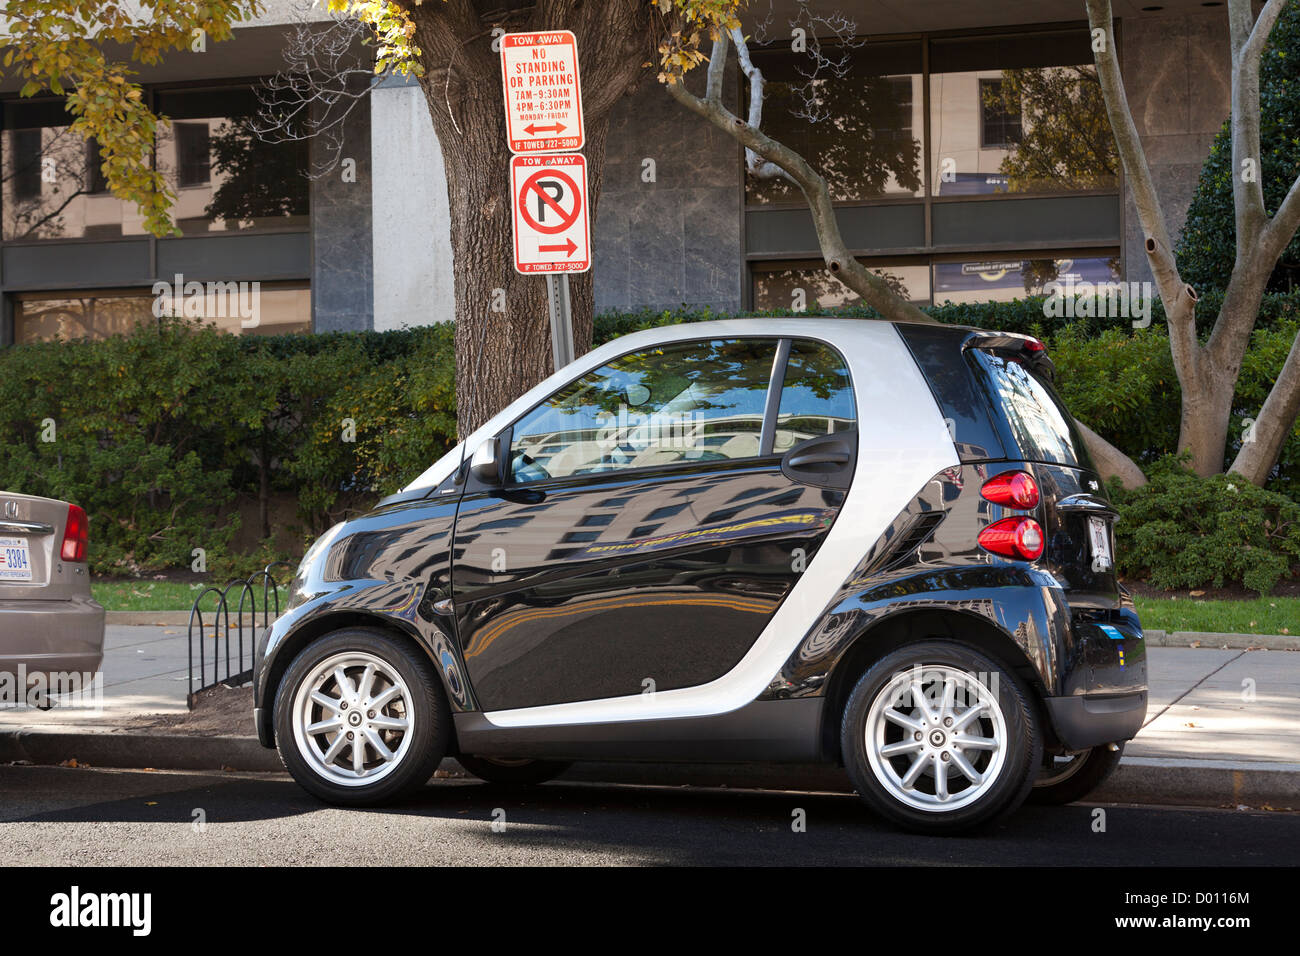 Illegally parked SmartCar - Stock Image